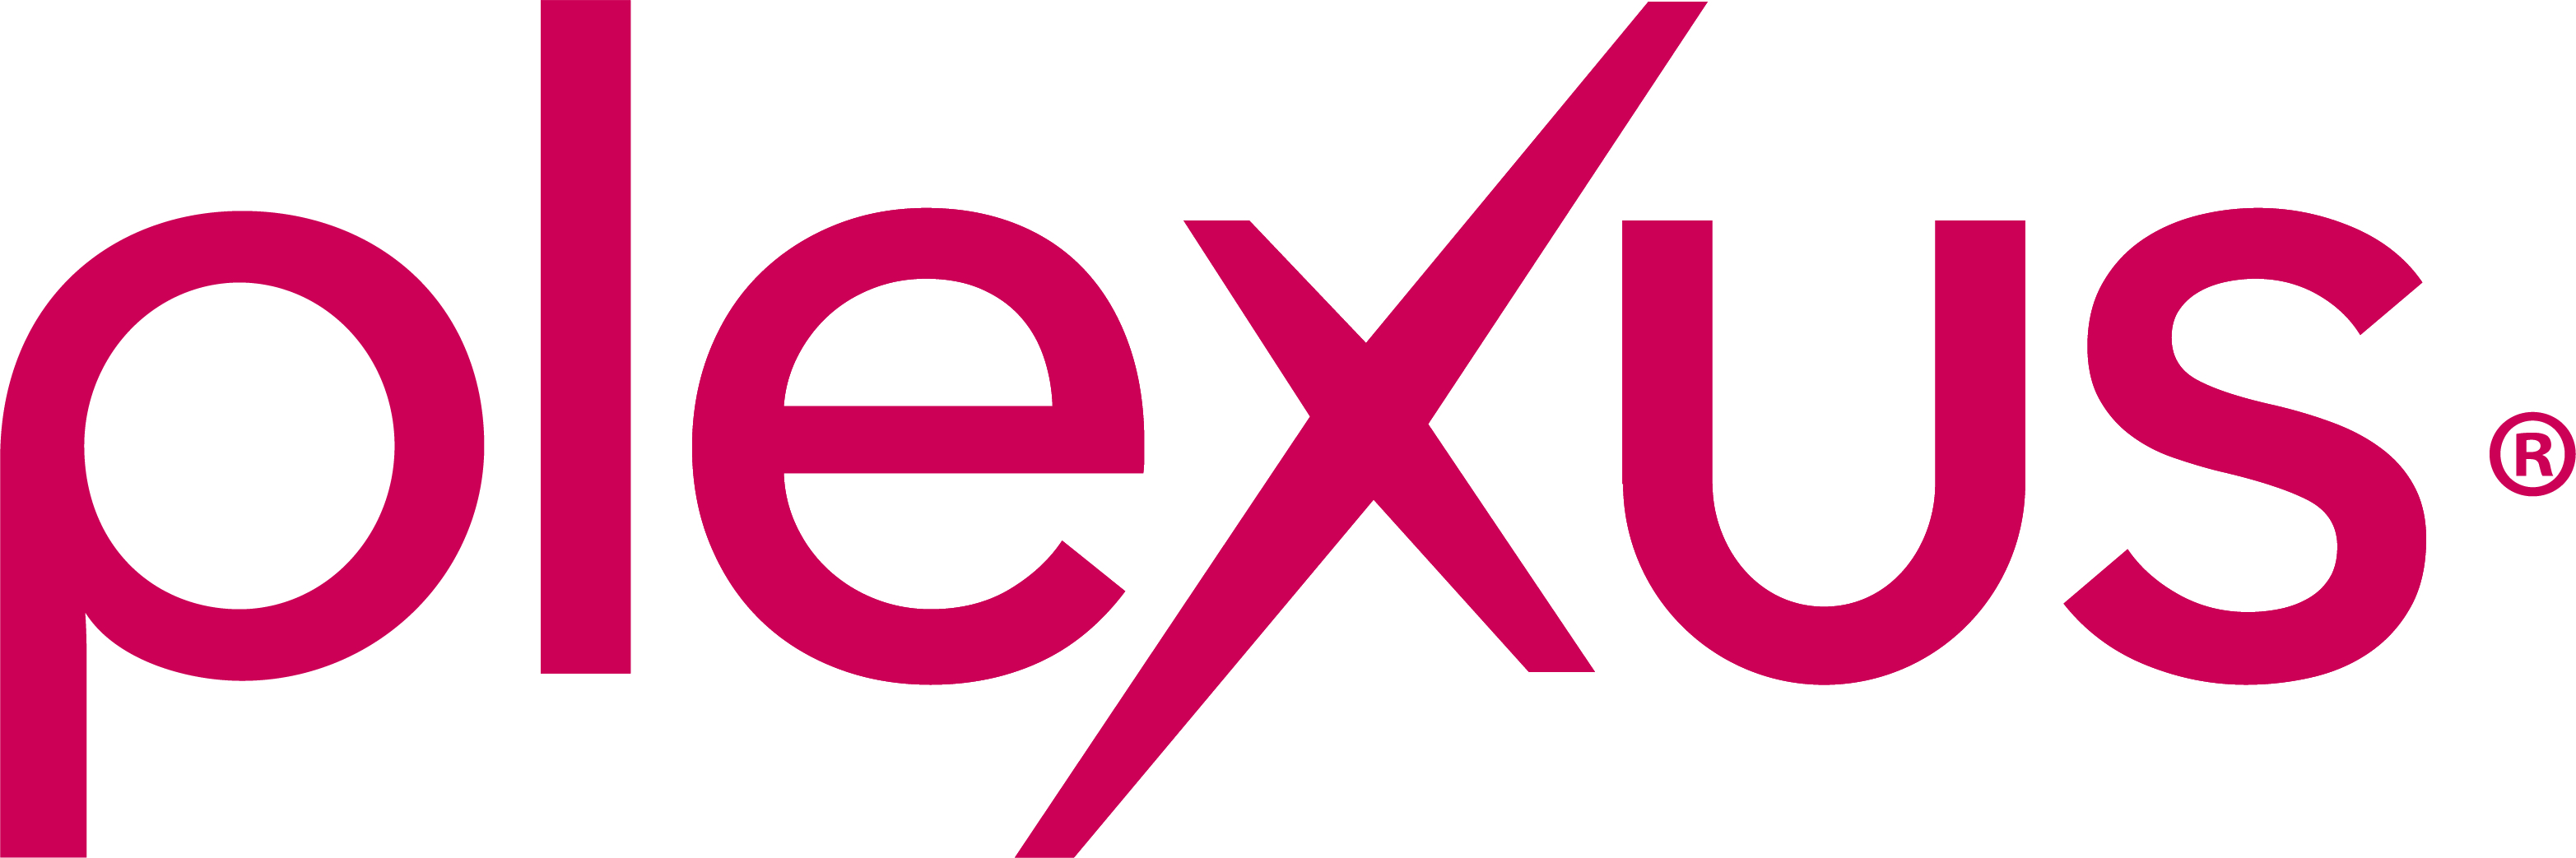 Plexus Promo Codes: Up to 100% off